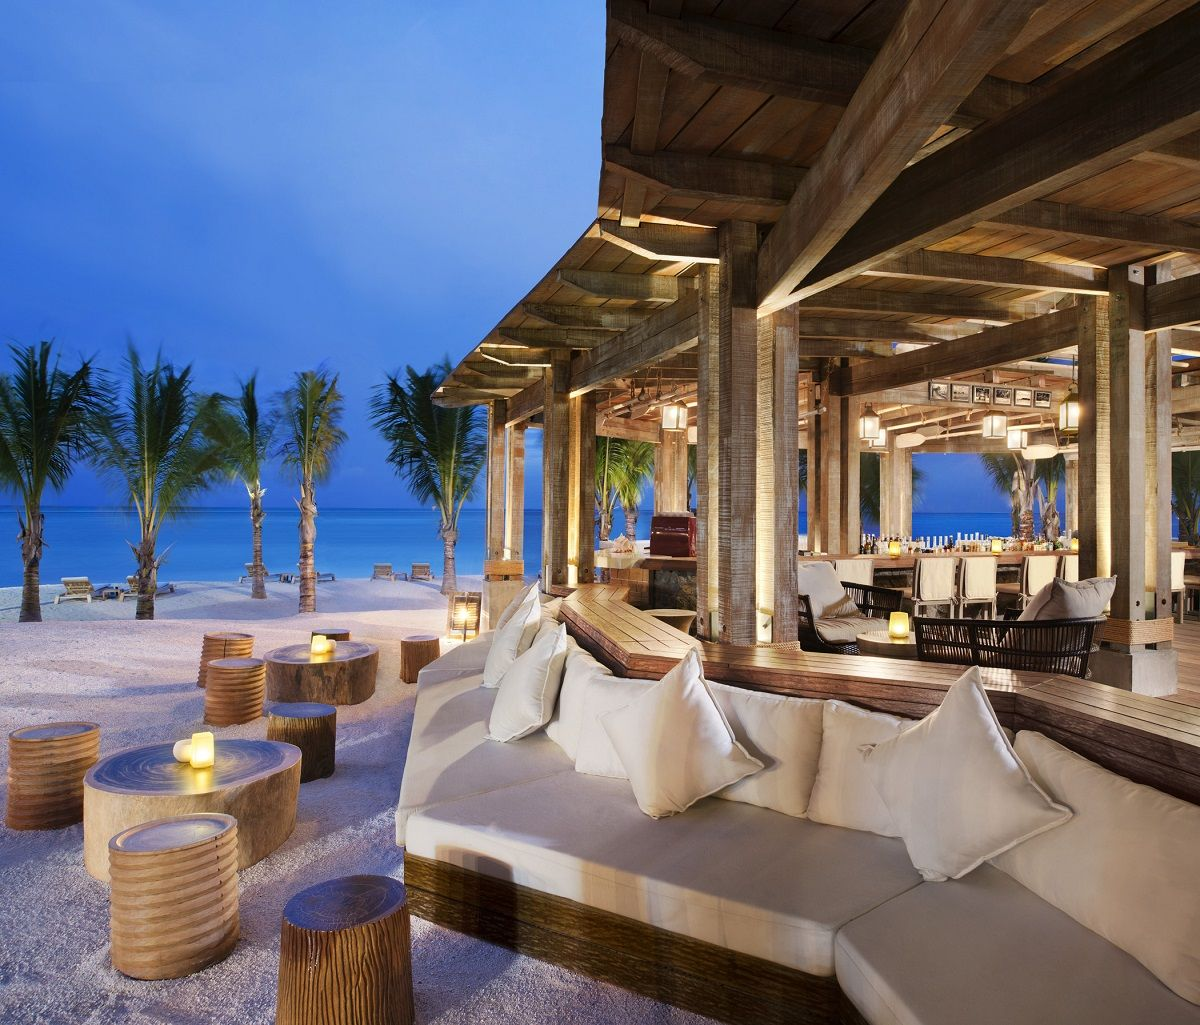 6 Glorious Hotel Beach Bars for Drinking in Style by the ...